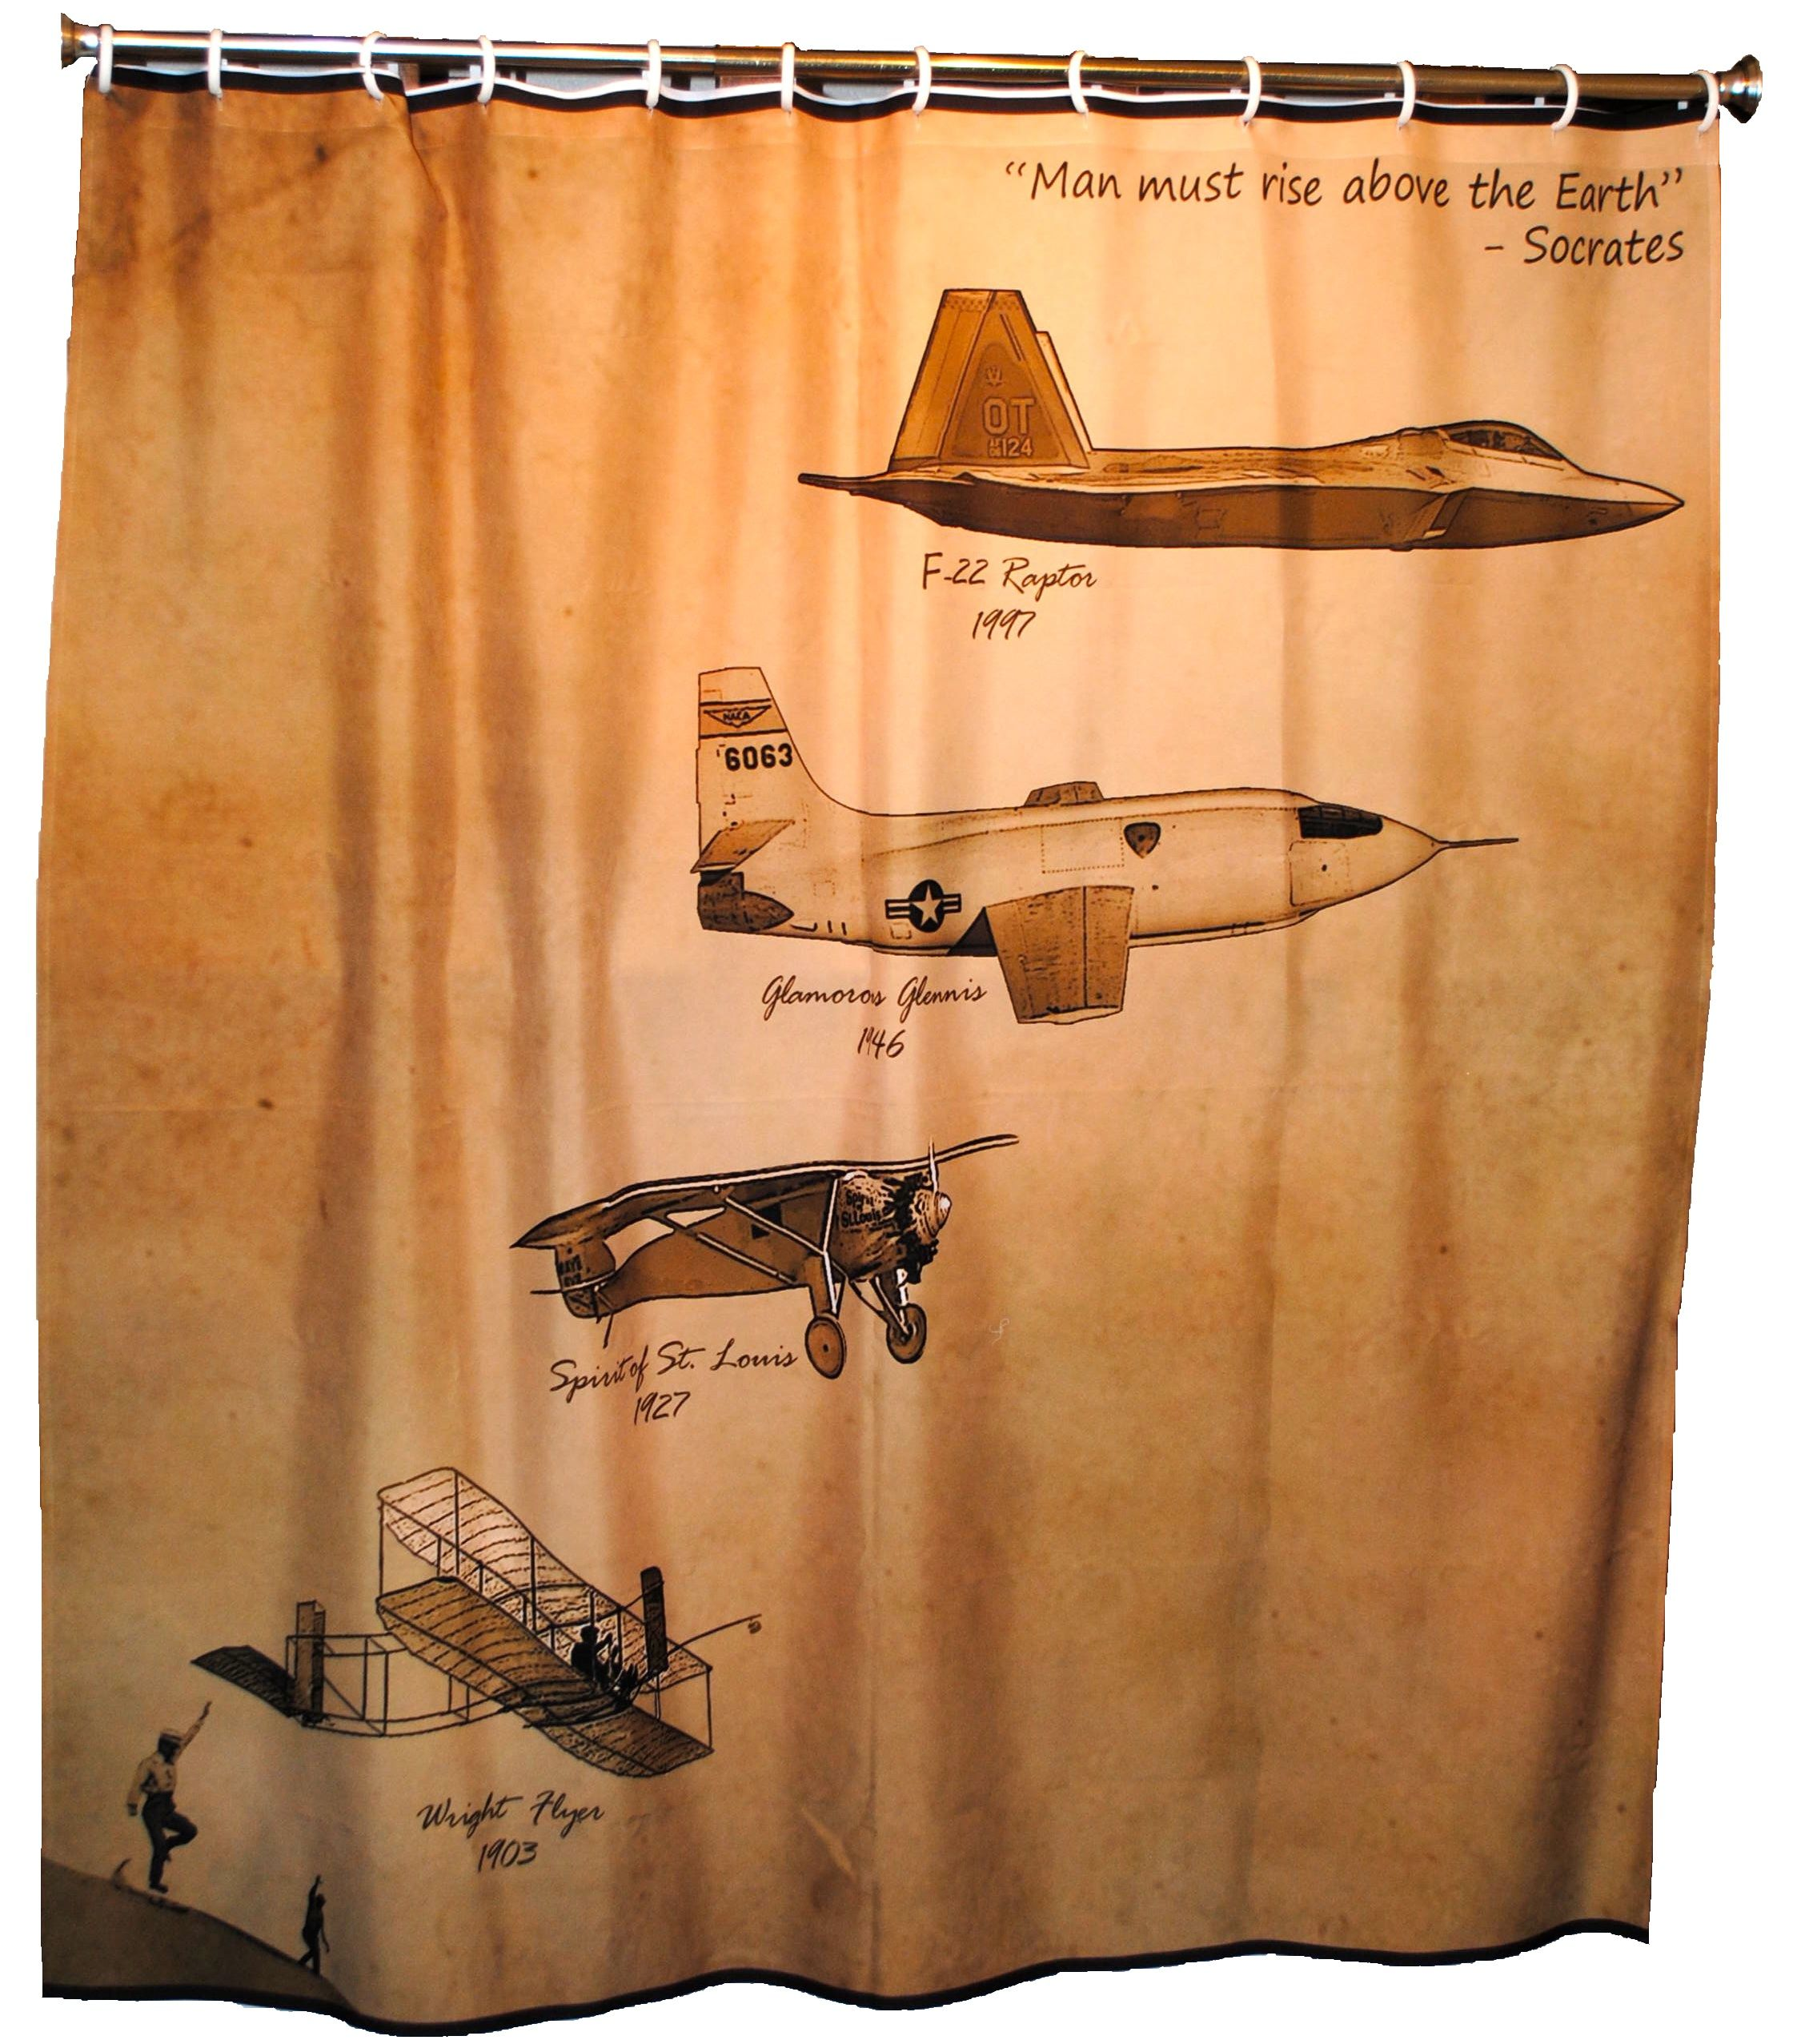 ideas bed with kid shelves decor kids bedroom design and rooms avengers theme aviation airplane beautiful